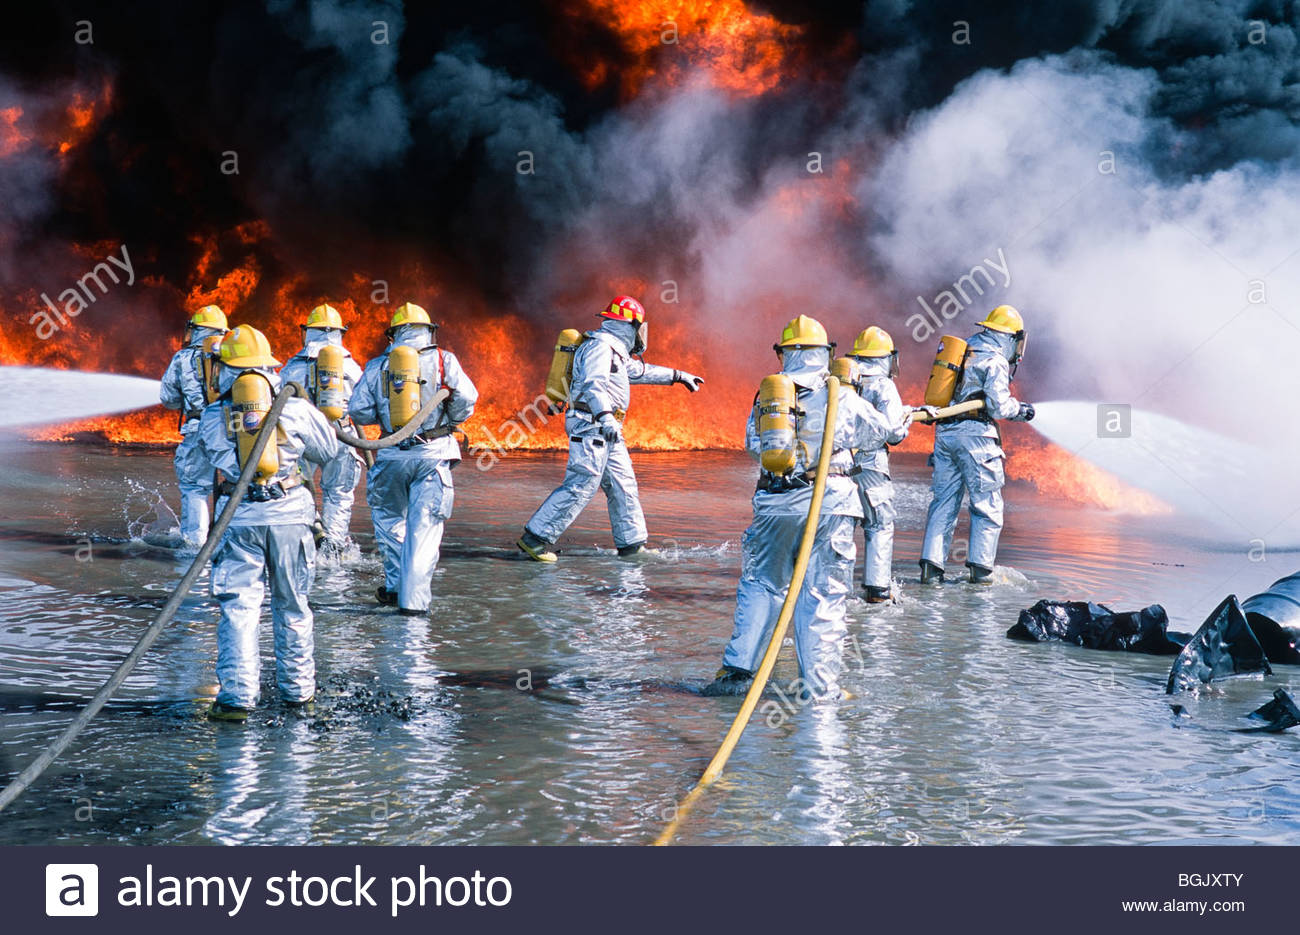 Alaska. Anchorage. Ted Stevens International Airport Fire Training Facility. - Stock Image